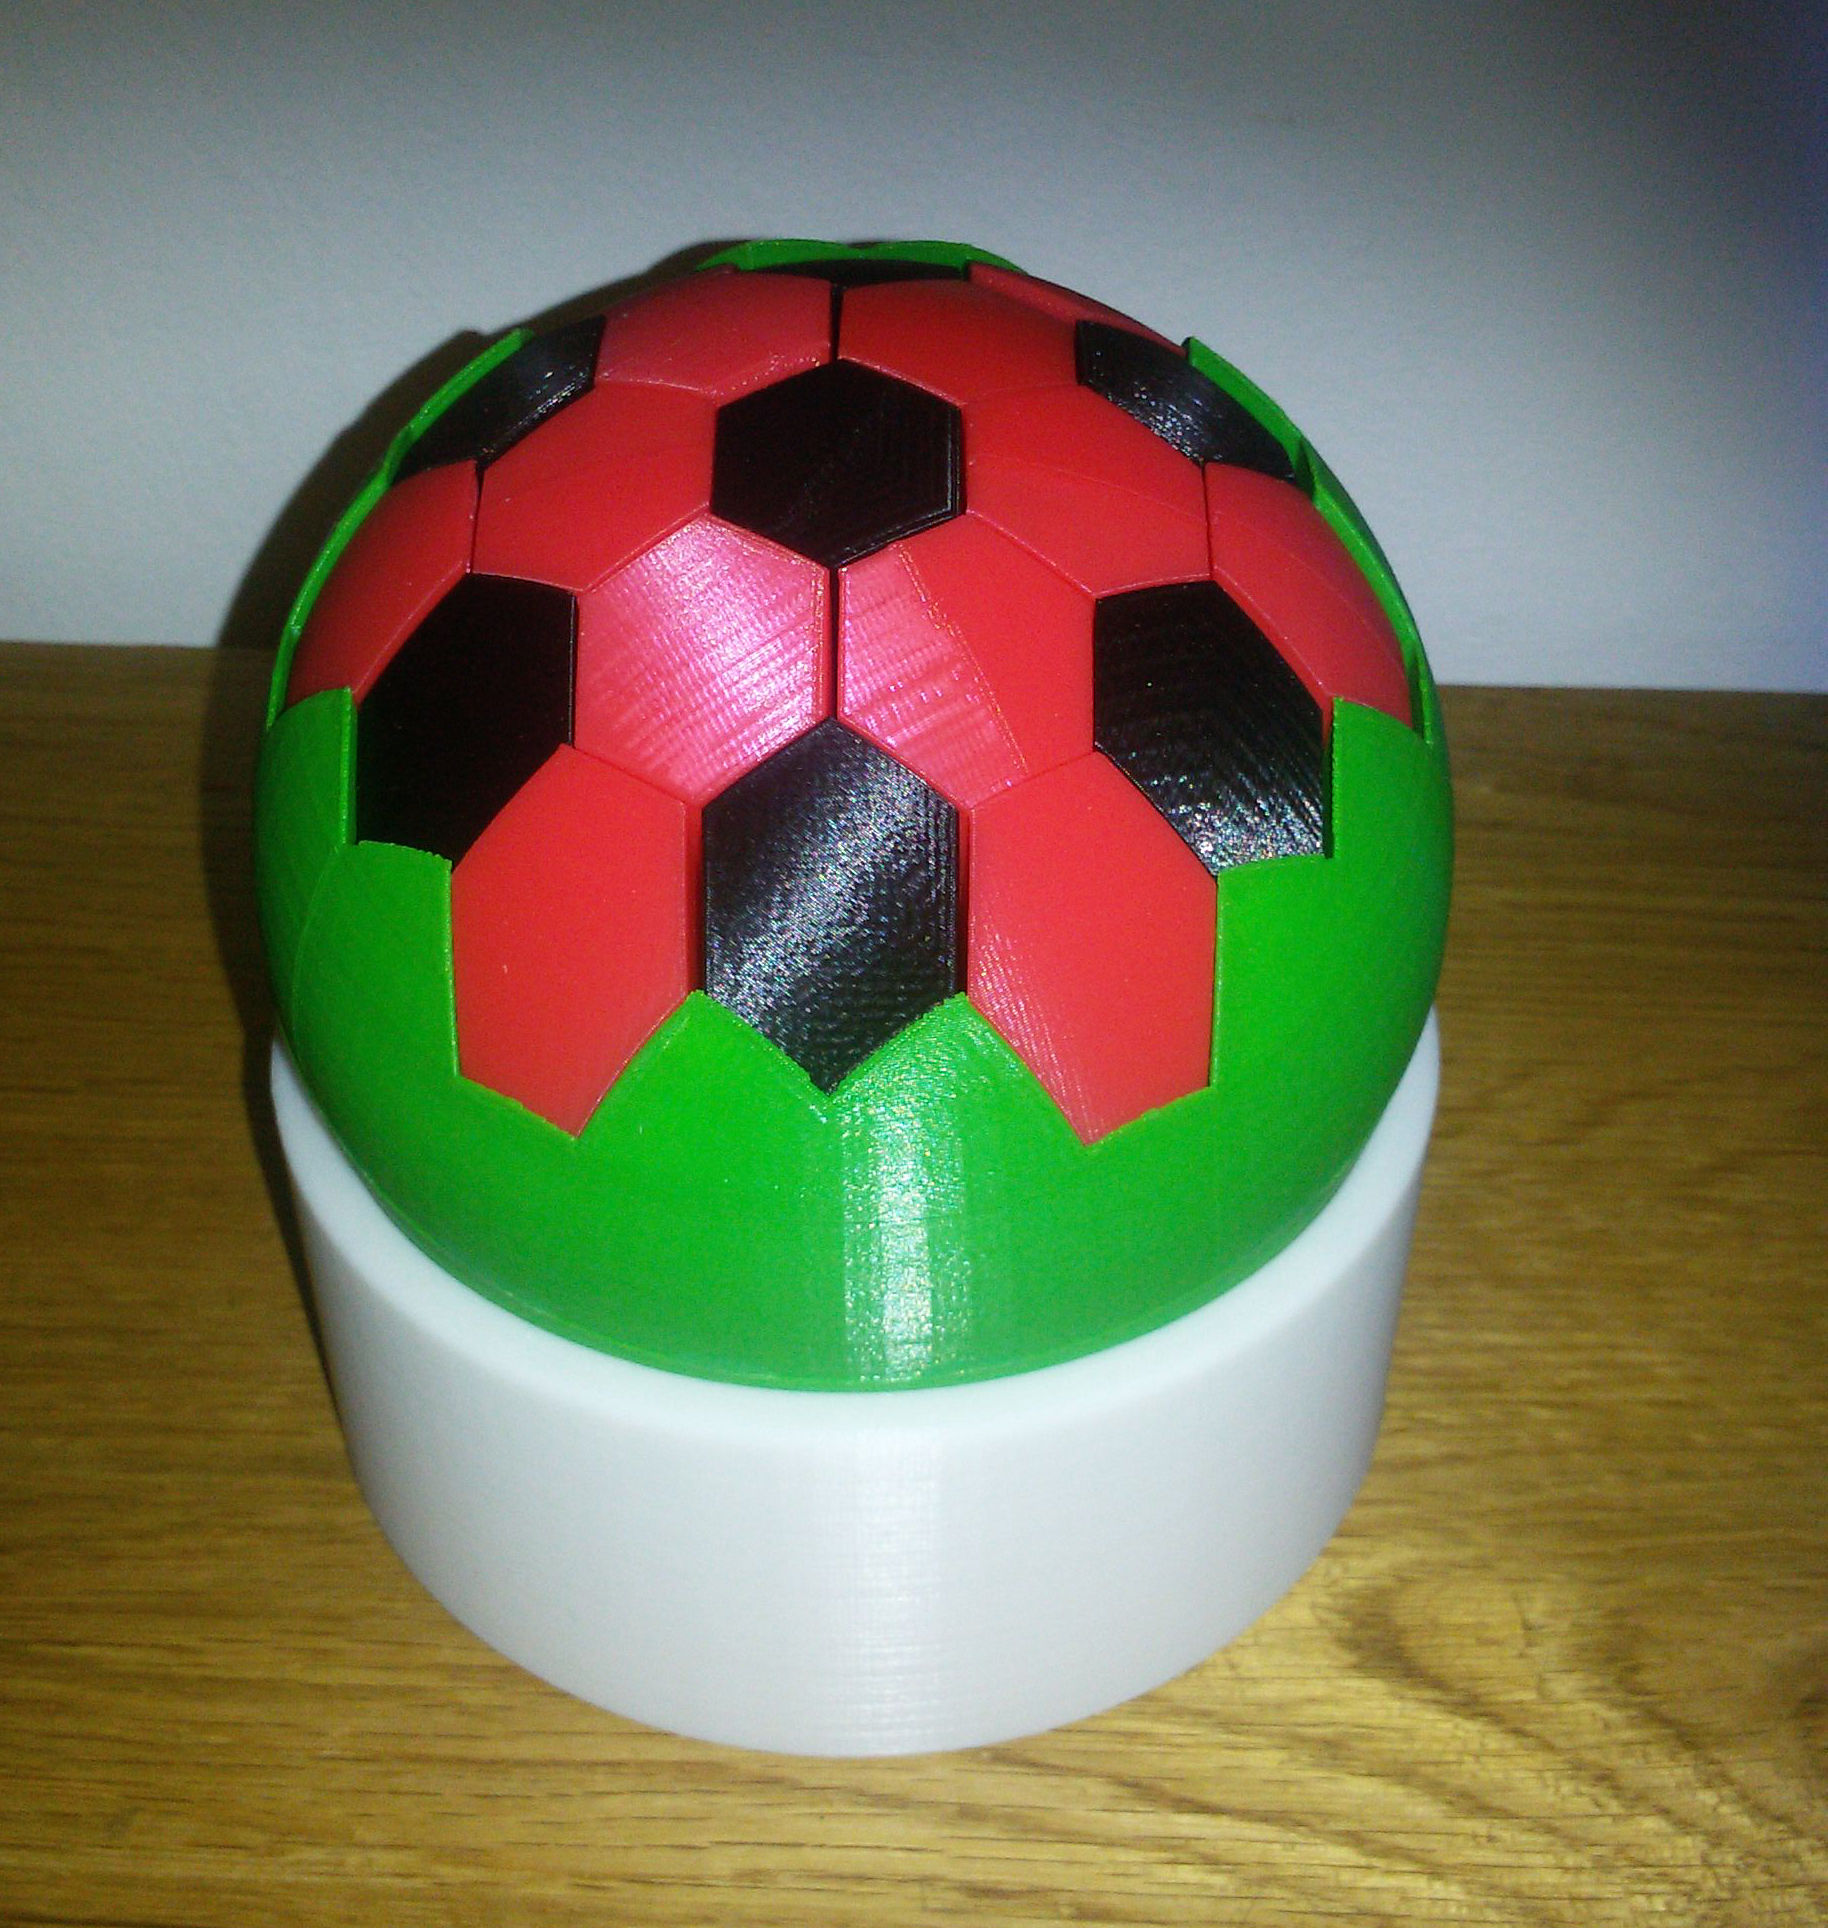 A-ball-puzzle-2-3500-3500